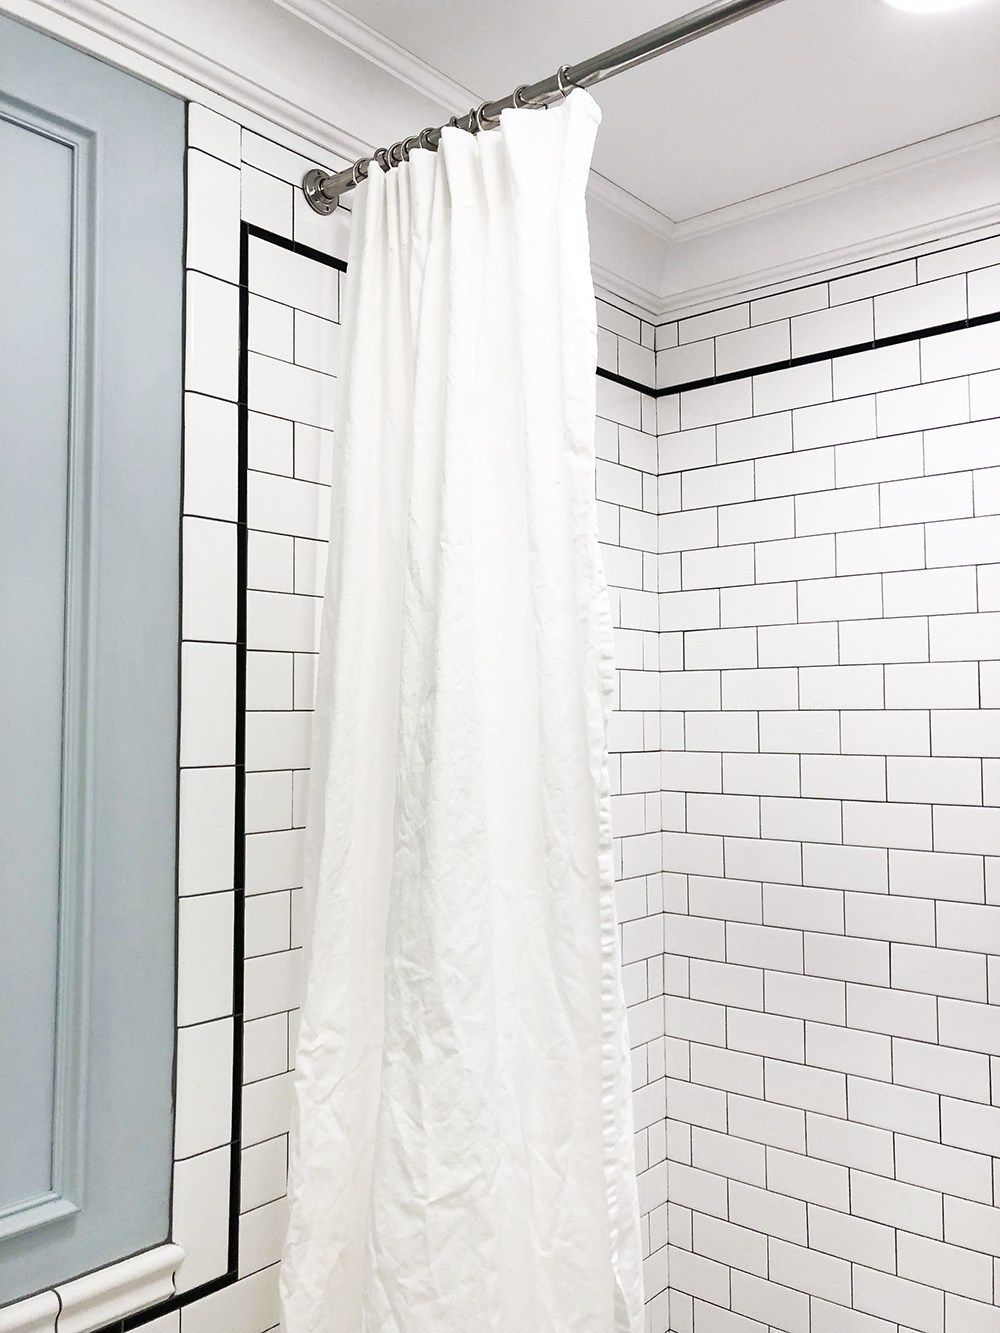 Extra Long Shower Curtain Diy Room For Tuesday Blog Extra Long Shower Curtain Diy Shower Curtain Long Shower Curtains